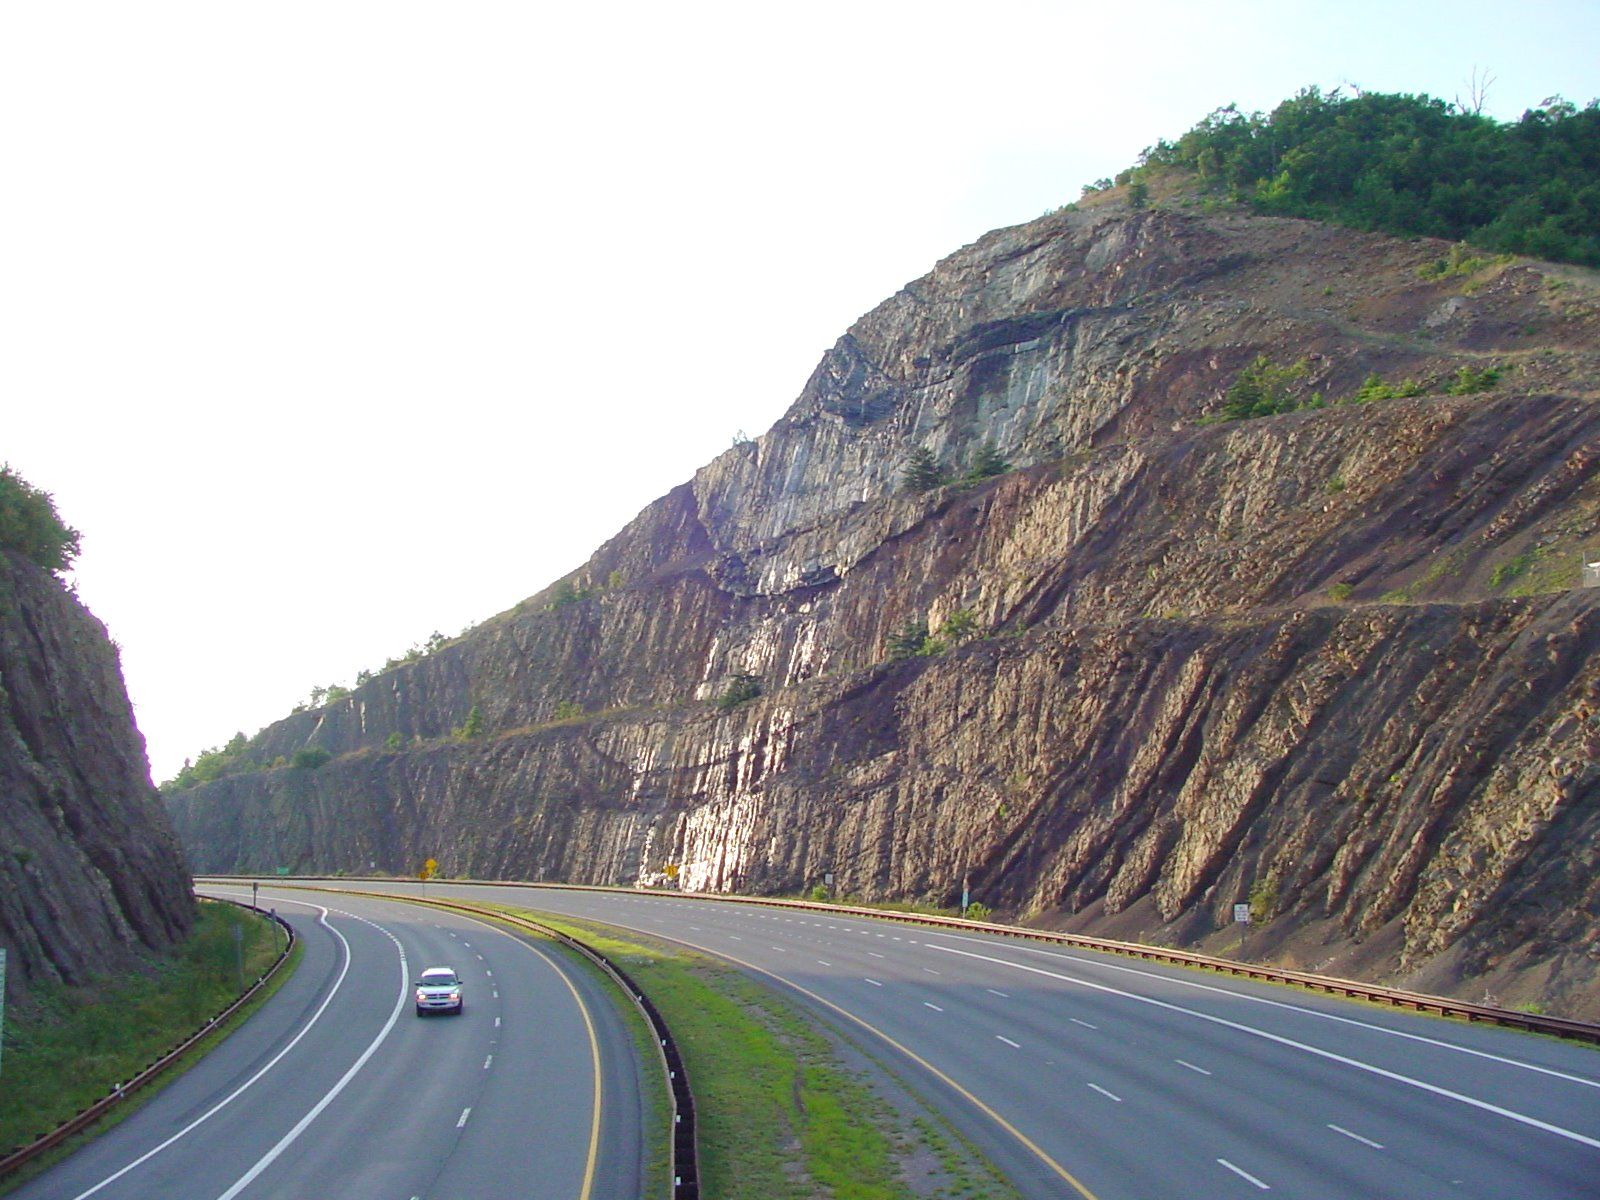 Interstate 68 Cut Through Sideling Hill Mountain